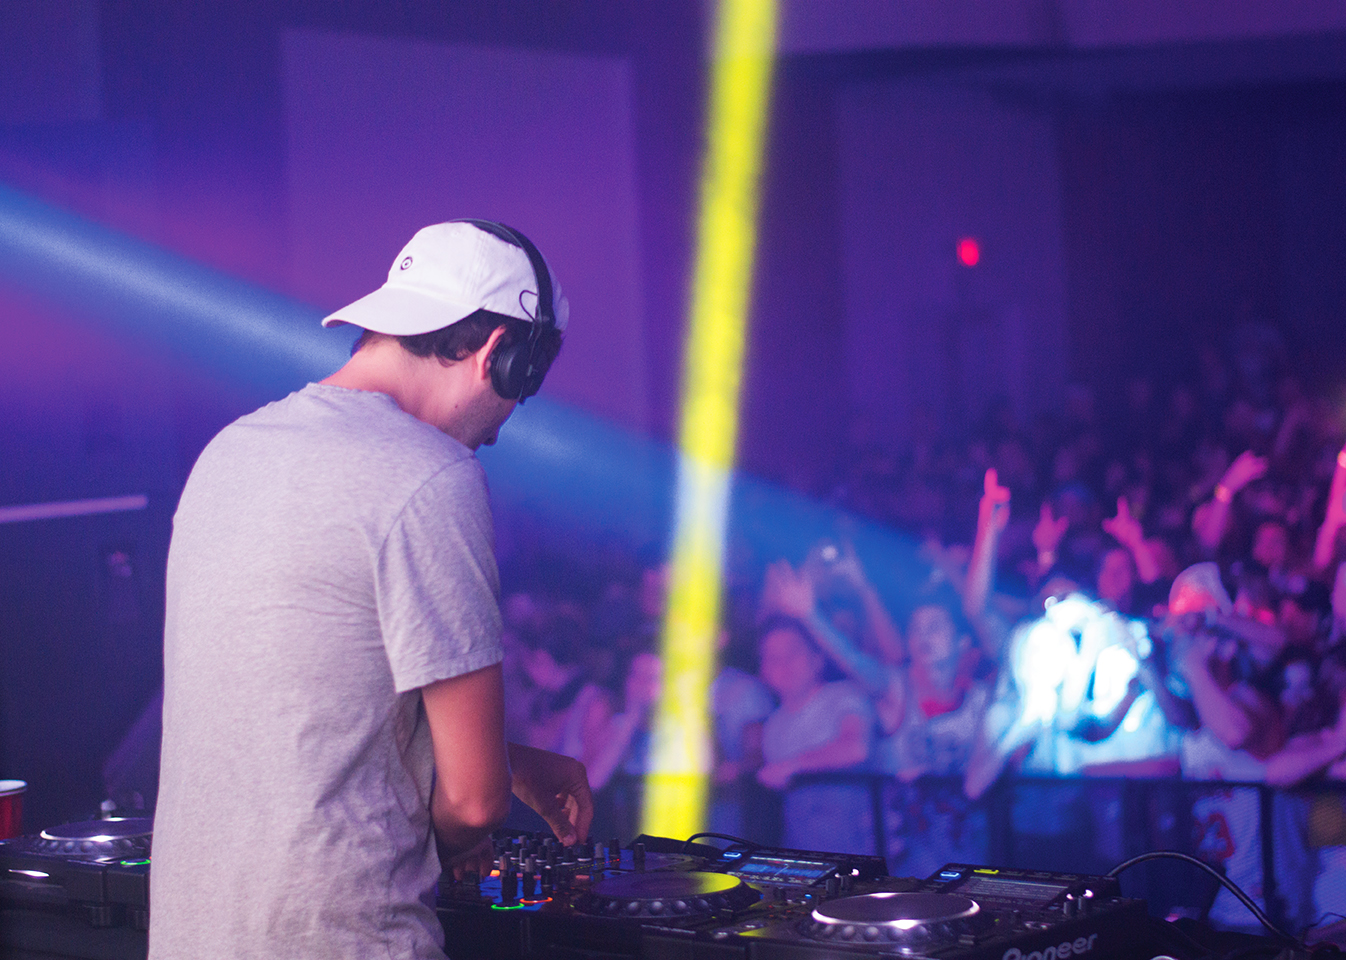 Local DJs play stage-side with Baauer at the Senator